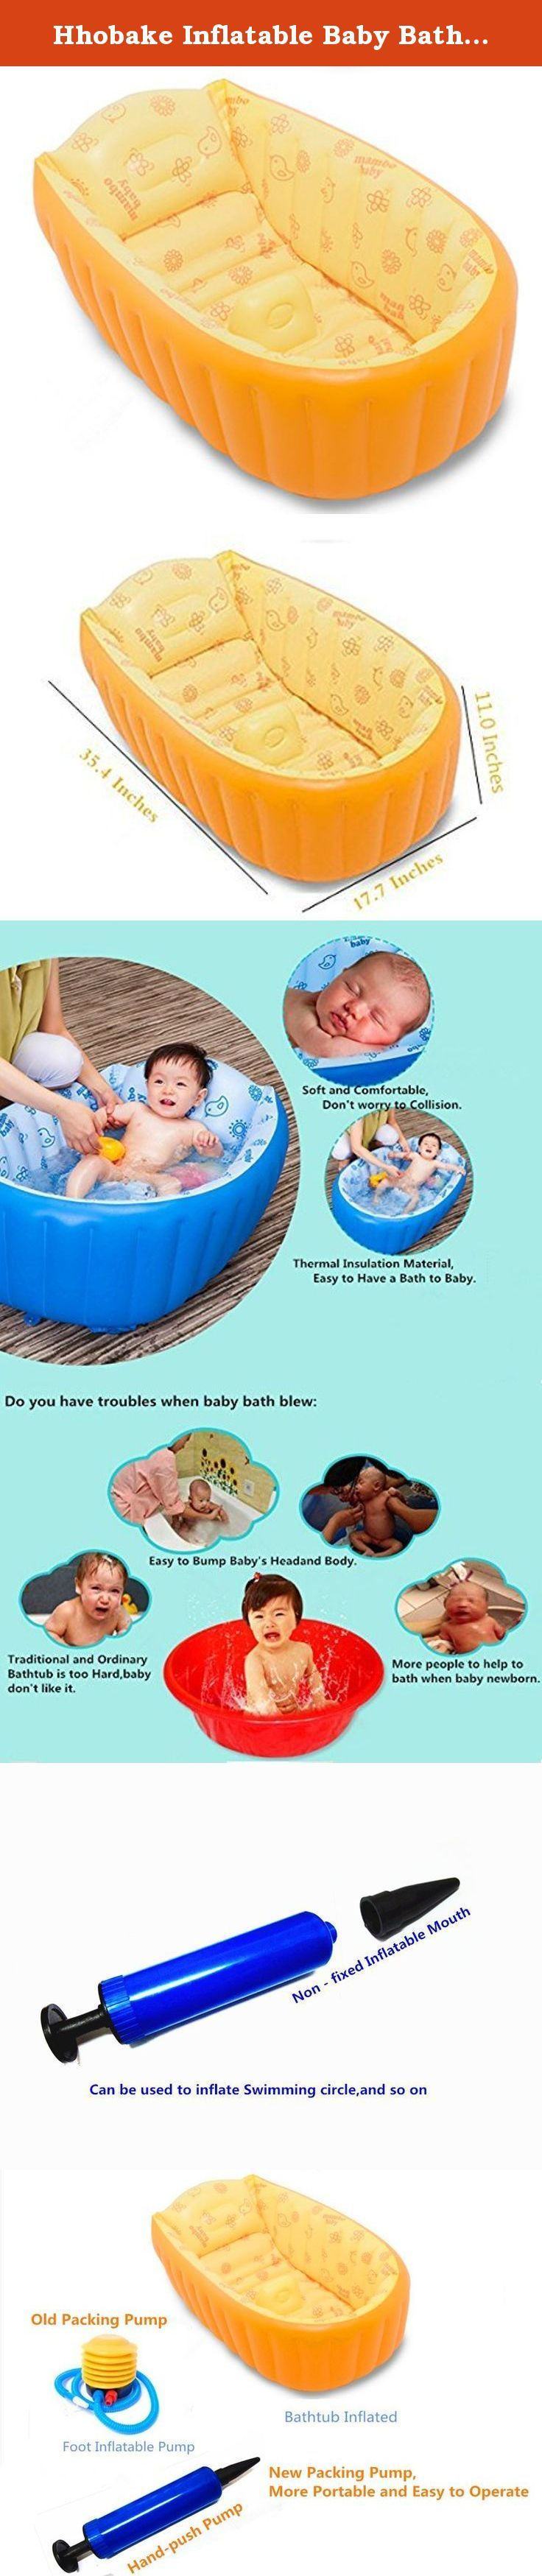 Hhobake Inflatable Baby Bathing Tubs and Seats,Baby Aerated Bathtub ...